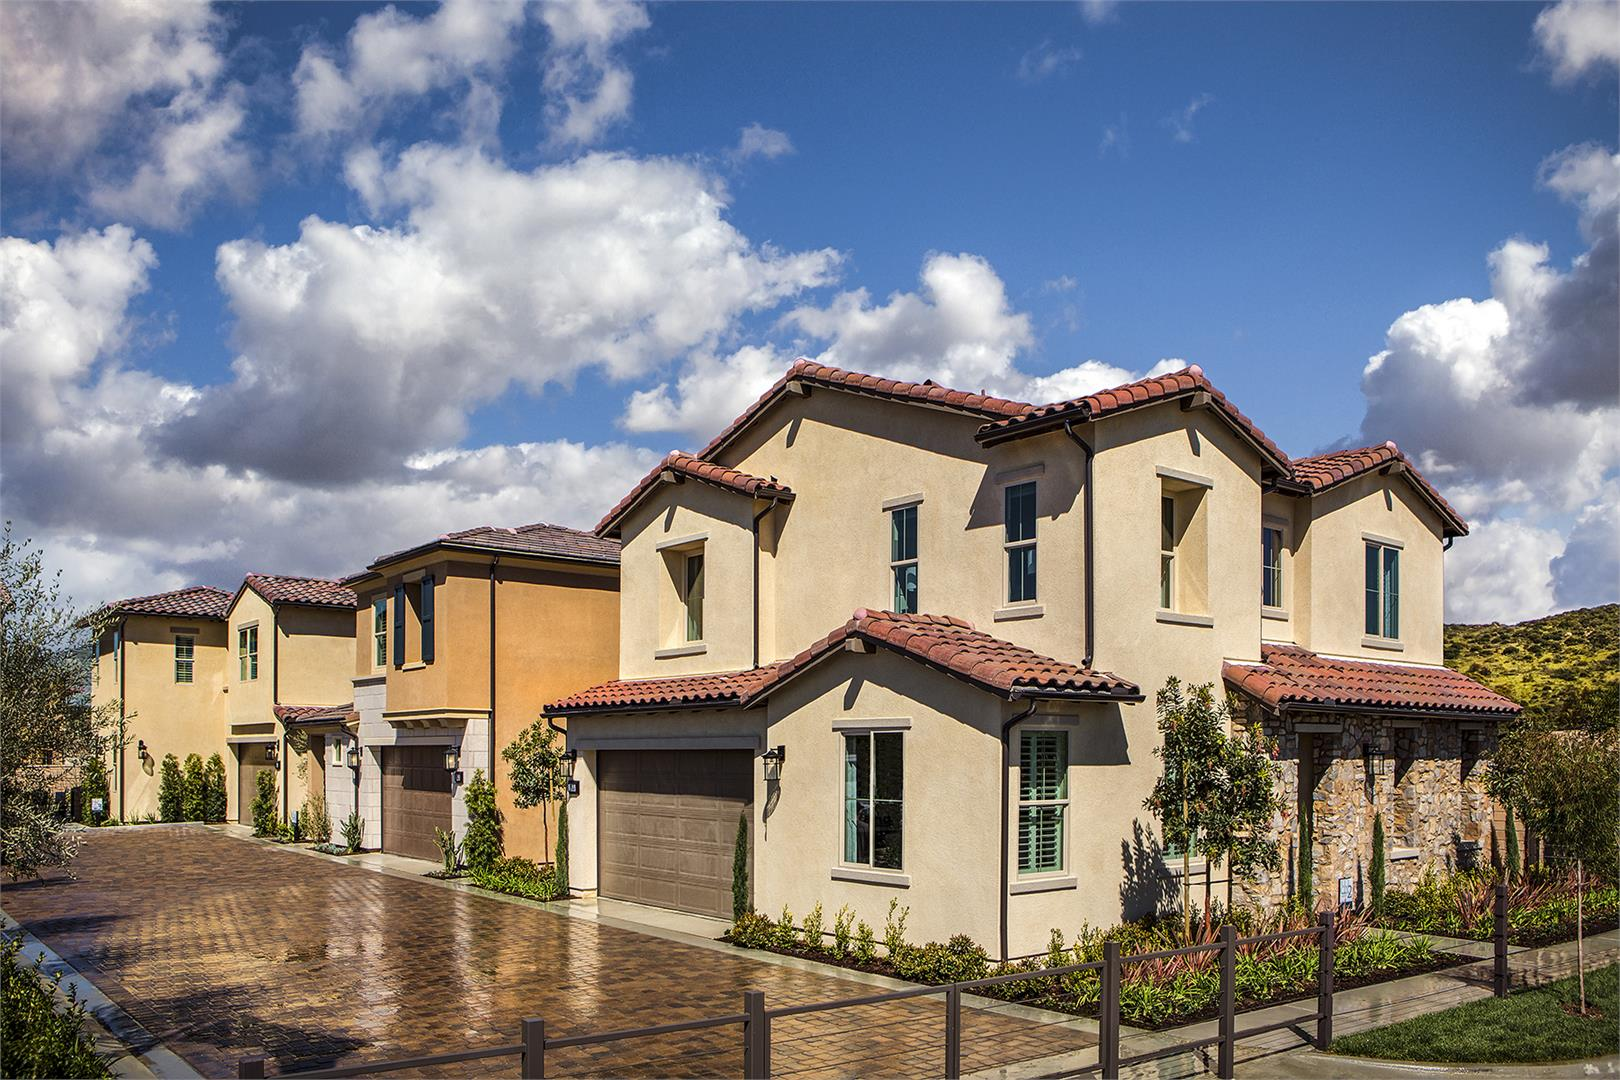 Baker Ranch - The Landing in Lake Forest, CA | Prices, Plans ... on home depot southern california, barratt american southern california, toll brothers southern california, kb home southern california,